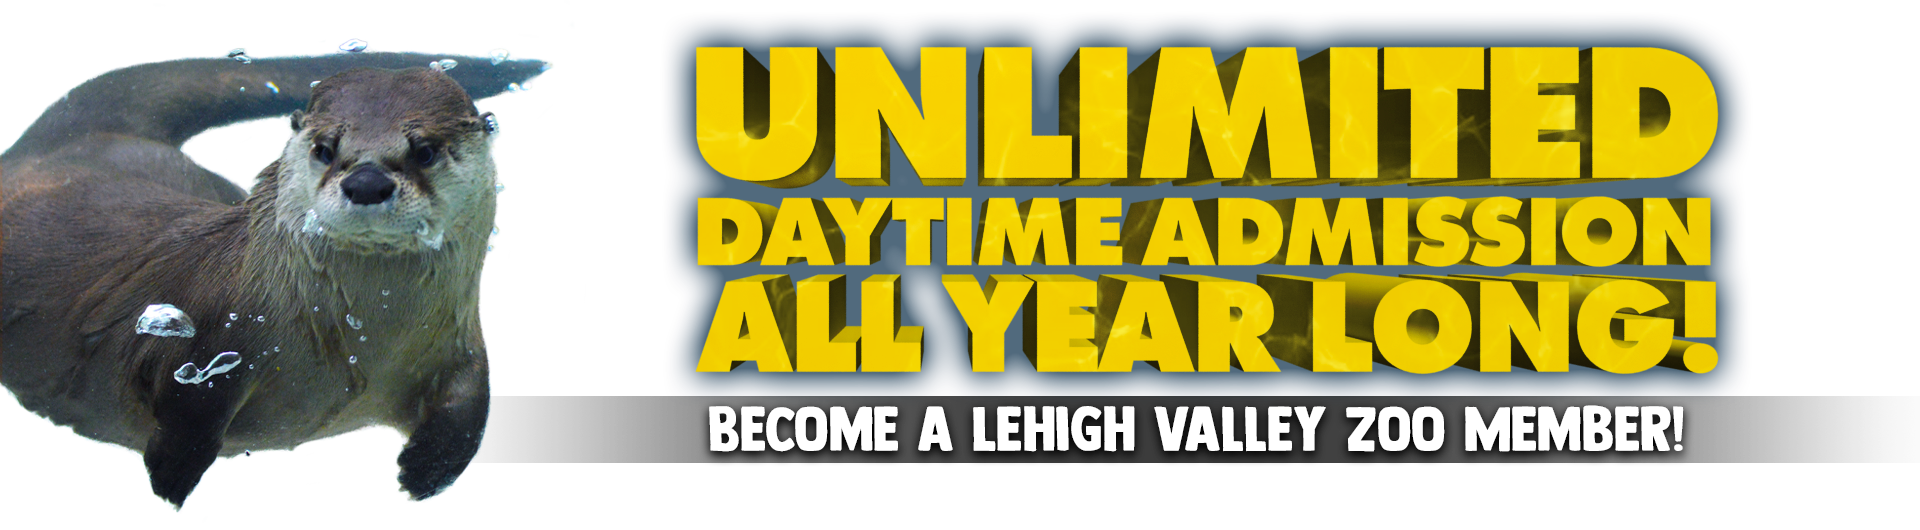 Unlimited Daytime Admission All Year Long! Become a Lehigh Valley Zoo Member